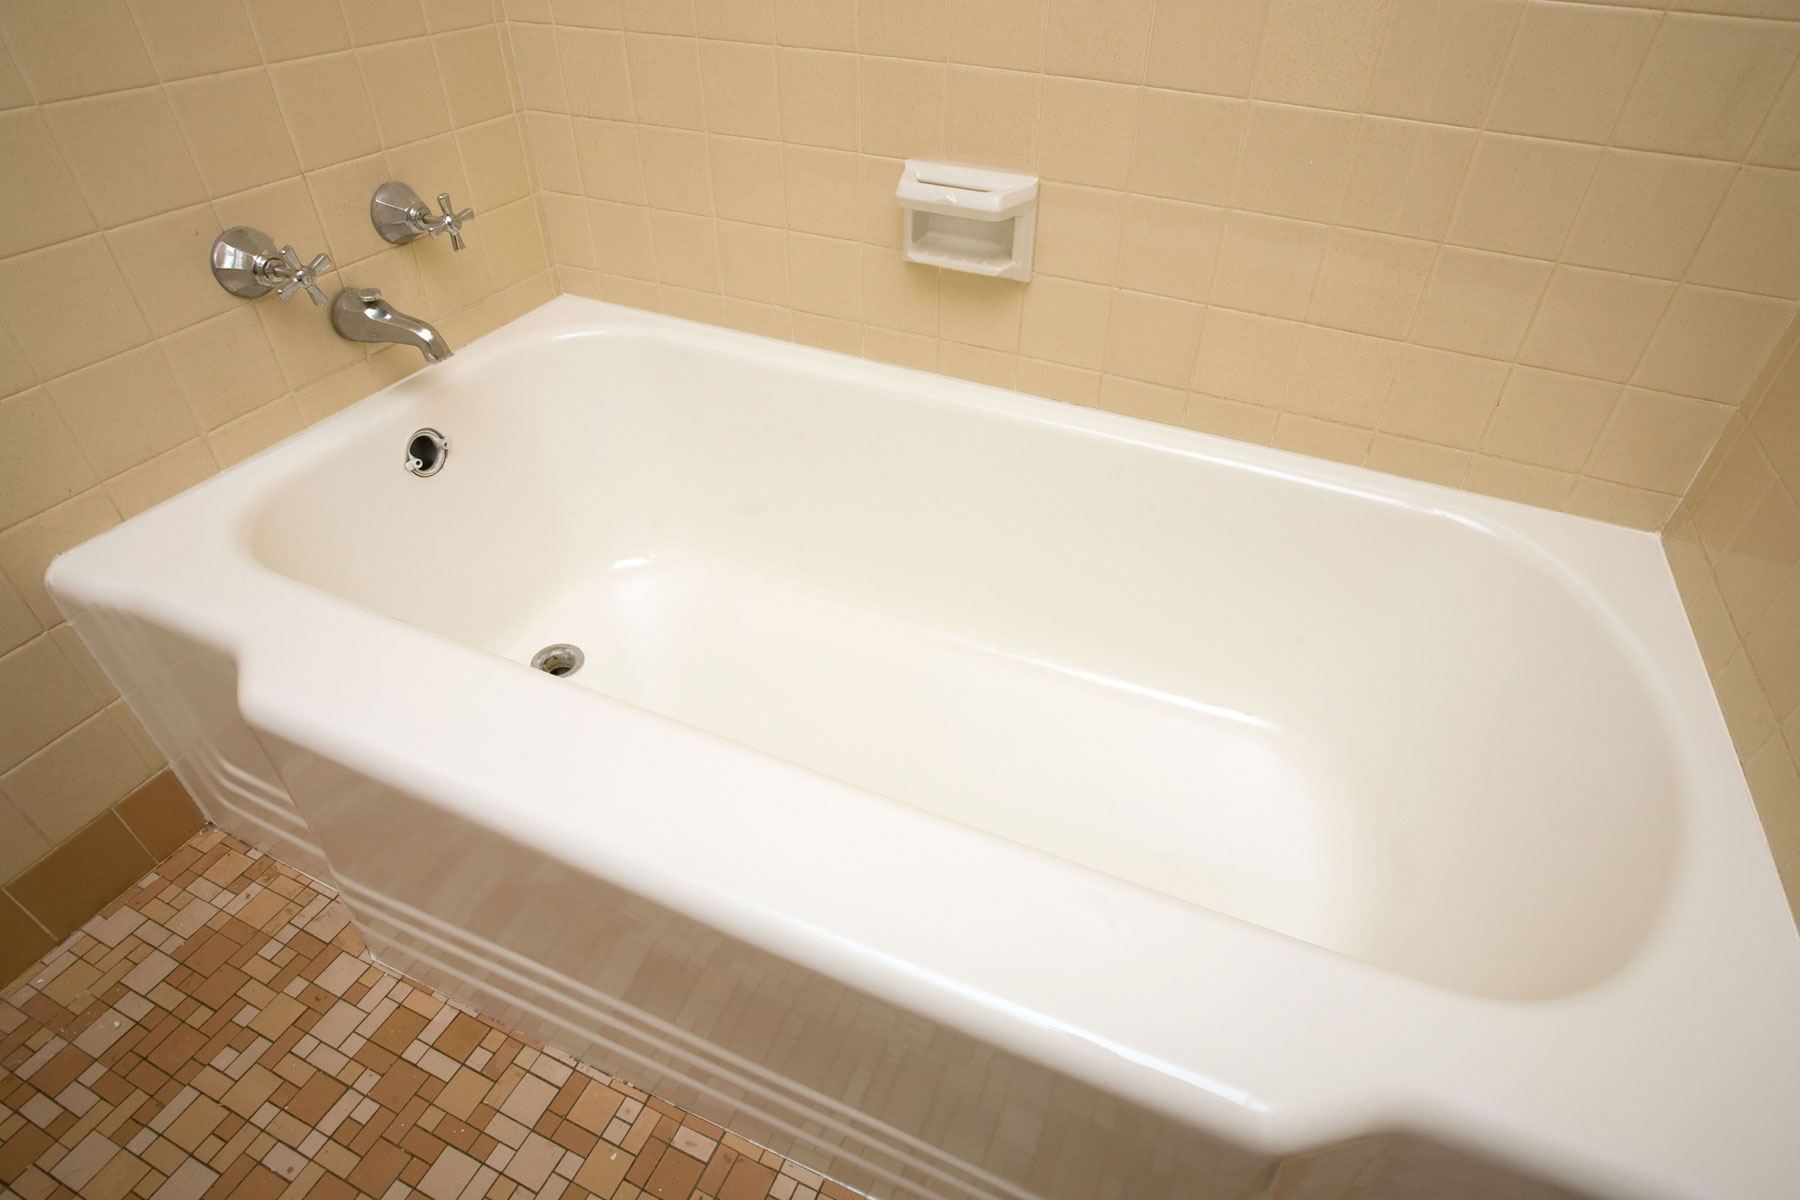 Save Money With Bathtub Shower Refinishing And Resurfacing - Bathtub restoration cost